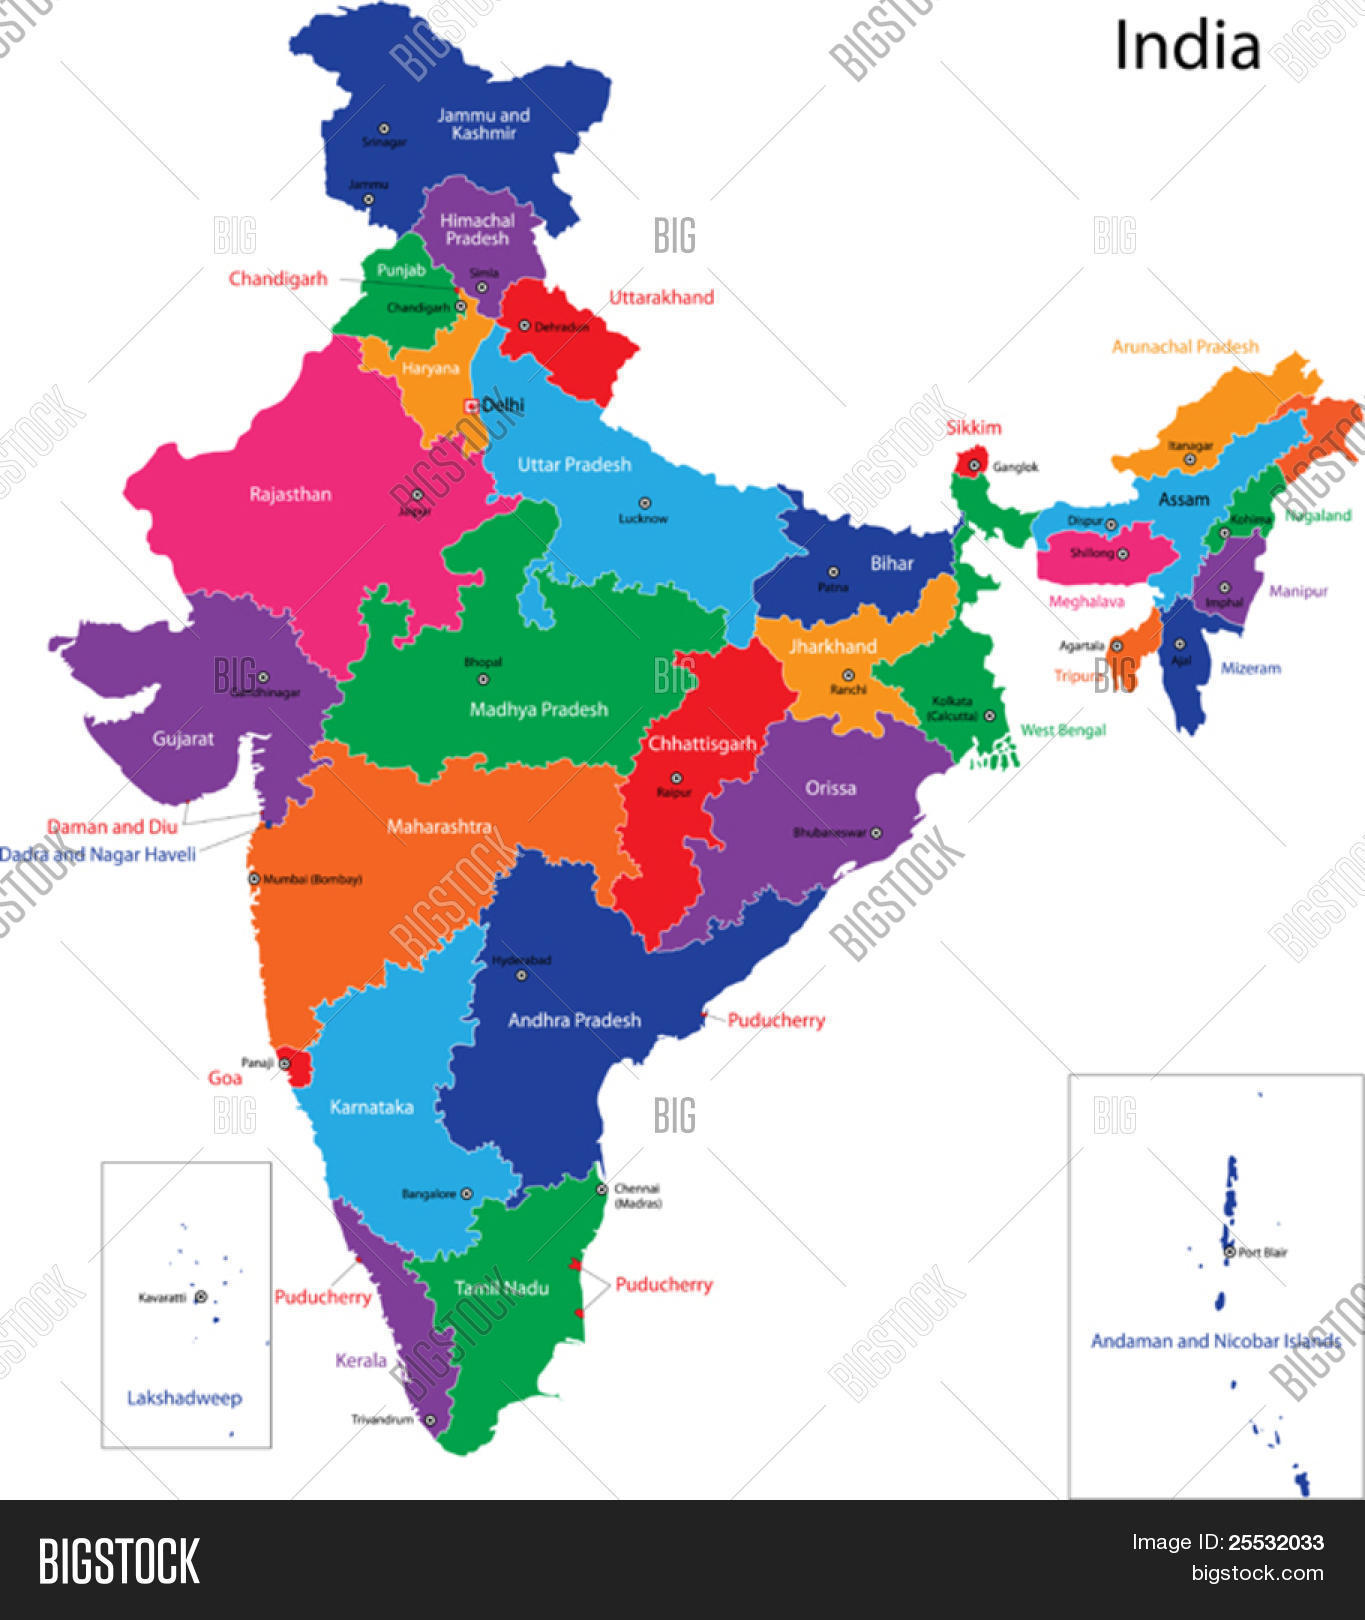 Map Republic India Vector & Photo (Free Trial) | Bigstock on big europe map, big yemen map, big honduras map, indan map, big albania map, big africa map, big australia map, big argentina map, big panama map, big florida map, big mexico map, big new hampshire map, big canada map, big usa map, big england map, big massachusetts map, big asia map, big costa rica map, big u.s. map, big ukraine map,